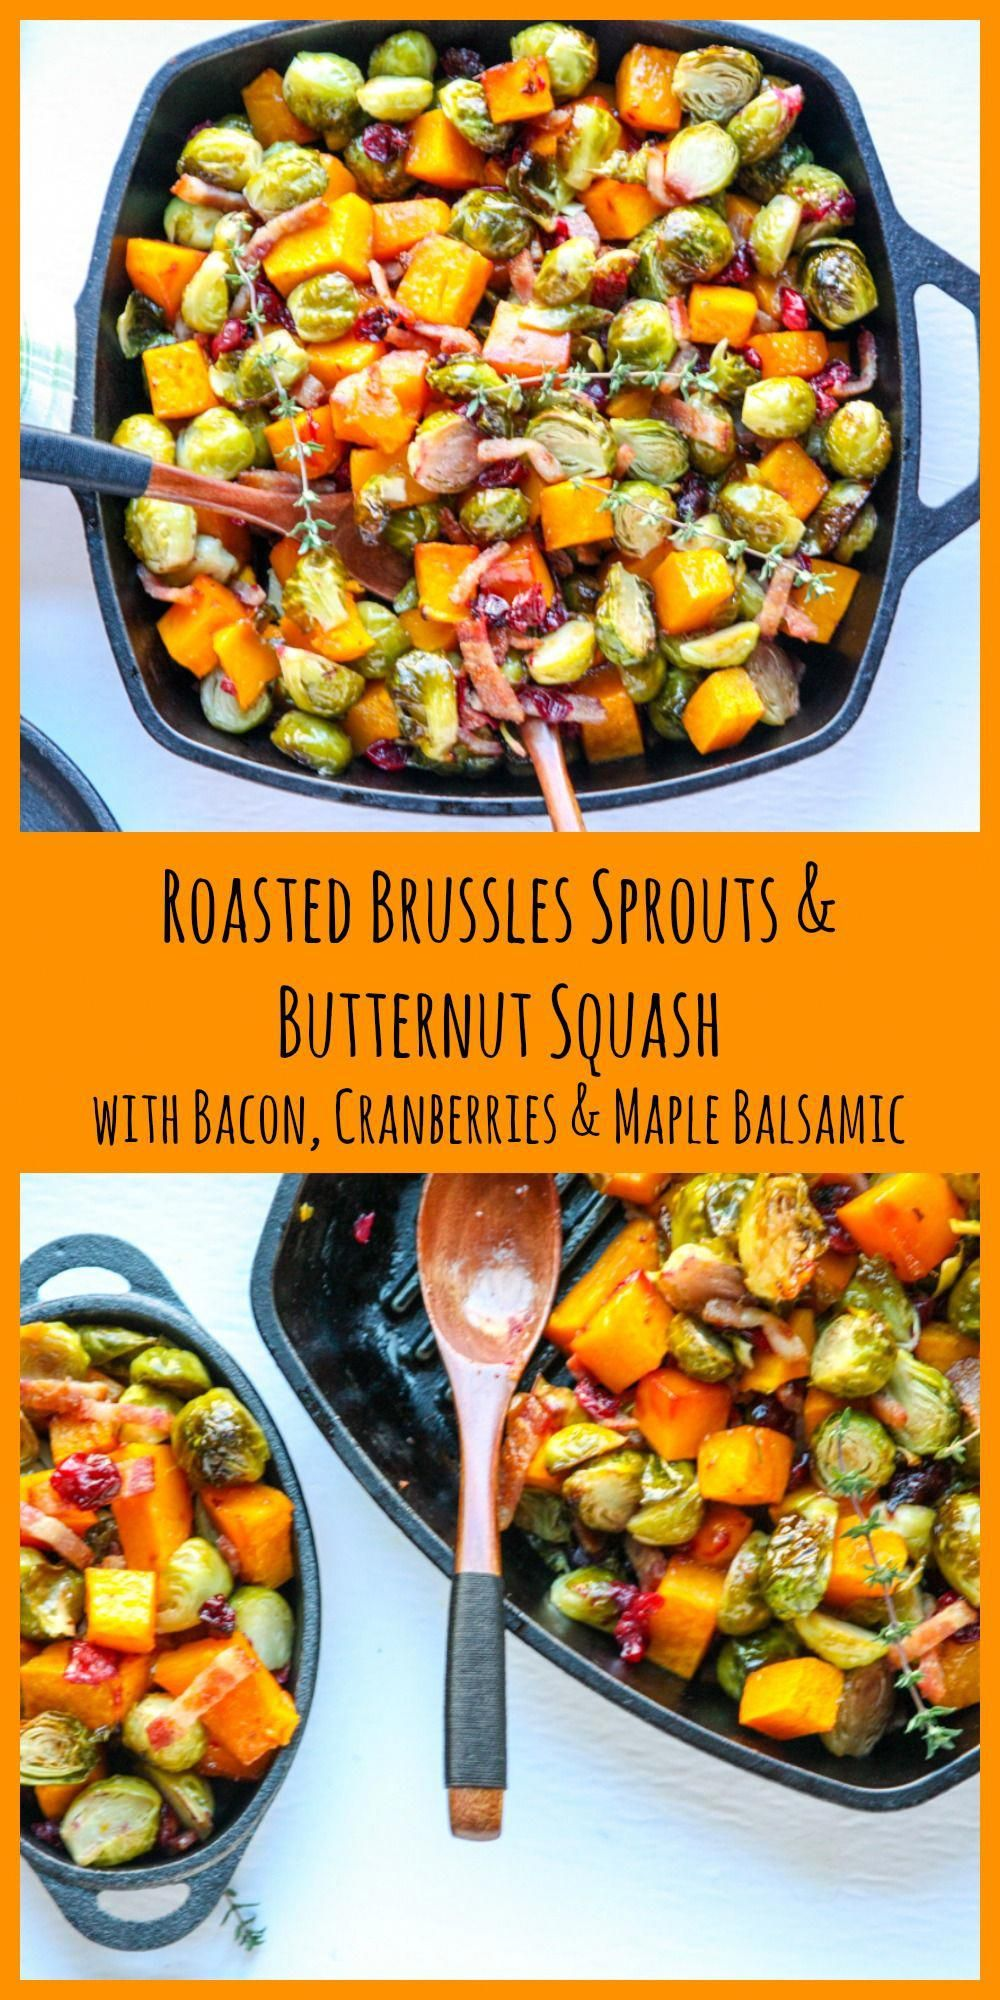 Roasted Brussels Sprouts & Butternut Squash with Cranberries, Bacon, & a Maple & Balsamic splash. This simple, festive fall dish tastes amazing, it's packed with nutrition, and it's super easy, too. A perfect holiday side, and just as simple and delicious for a weeknight too. sides sprouts recipes squash recipes veggie recipes vegetable recipes